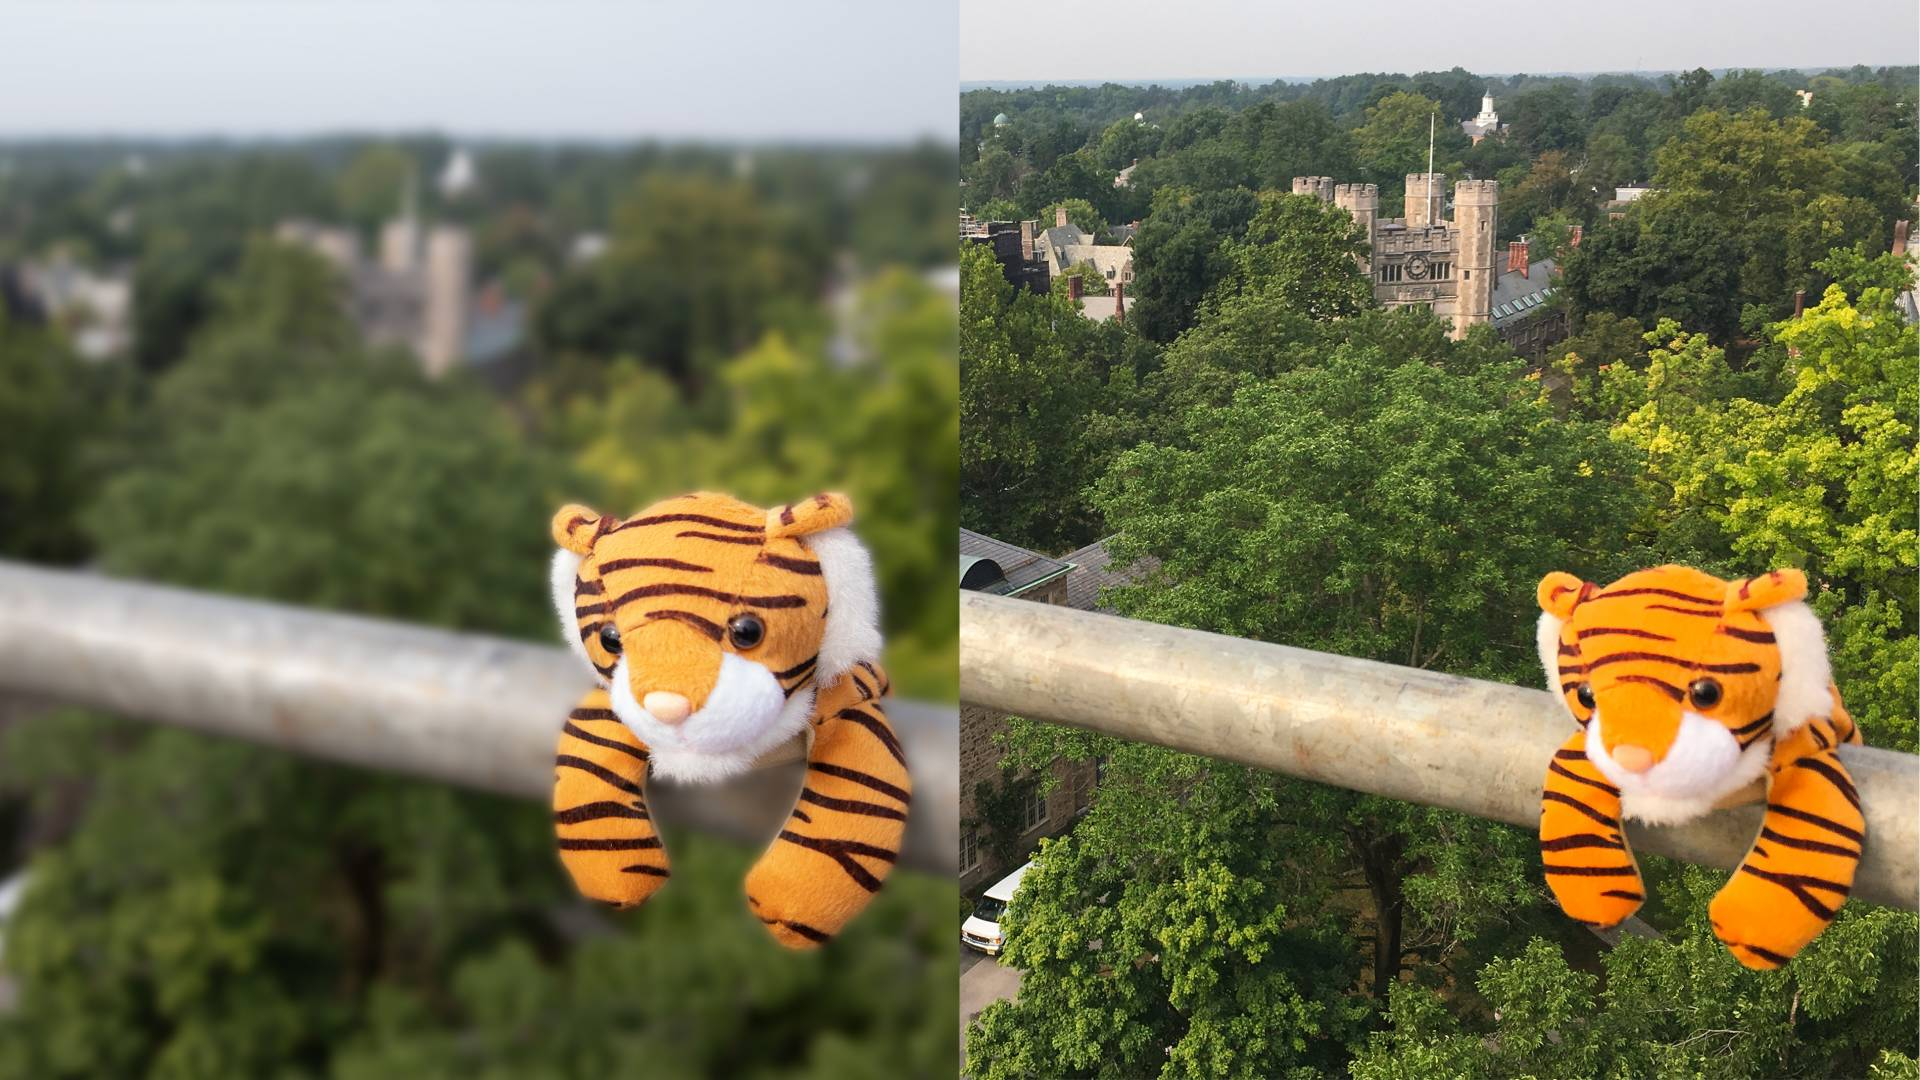 Two images side-by-side: An image of a stuffed tiger on a railing with a blurred campus in the background and an image of the same stuffed tiger with an unblurred campus in the background